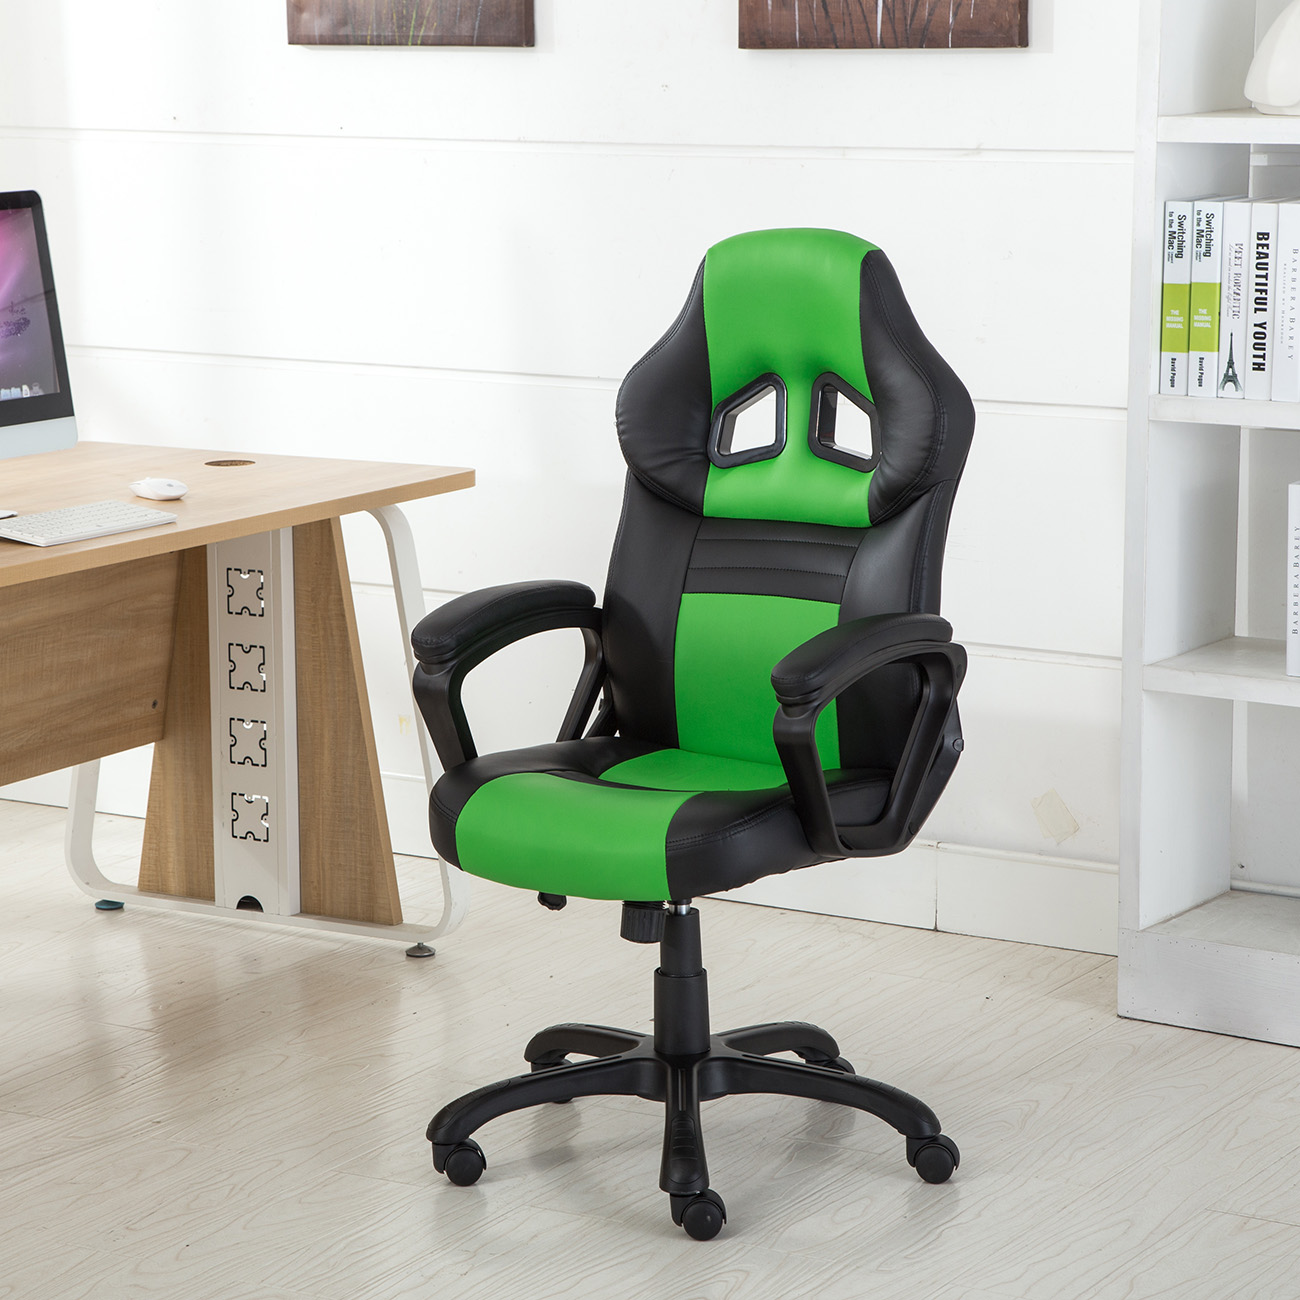 Office Chair Ergonomic Computer PU Leather Desk Swivel Seat Race Car Game Green